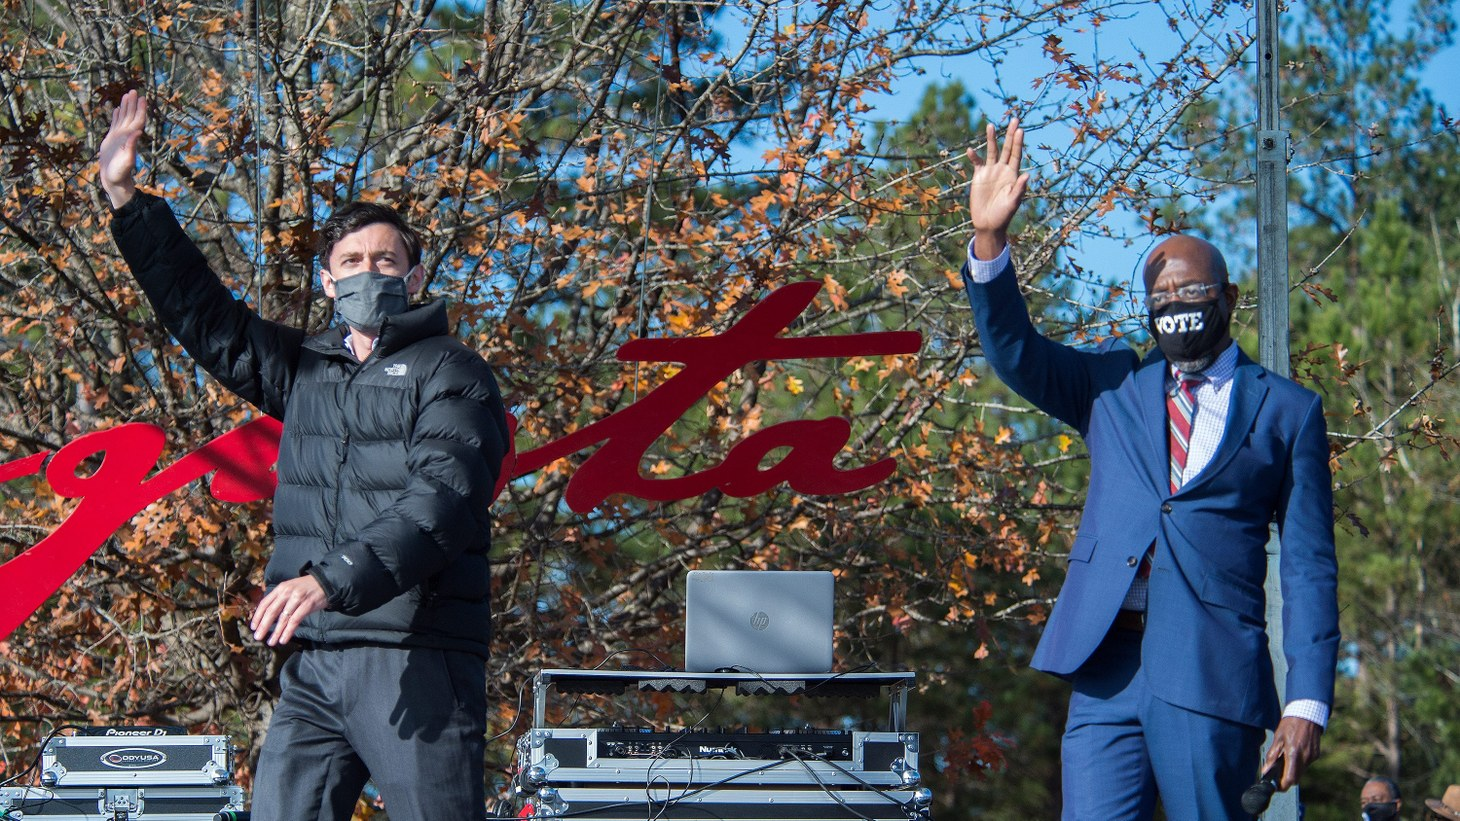 Jon Ossoff, left, and Raphael Warnock wave to the crowd during a campaign rally in Augusta, Ga., Monday morning January 4, 2021.